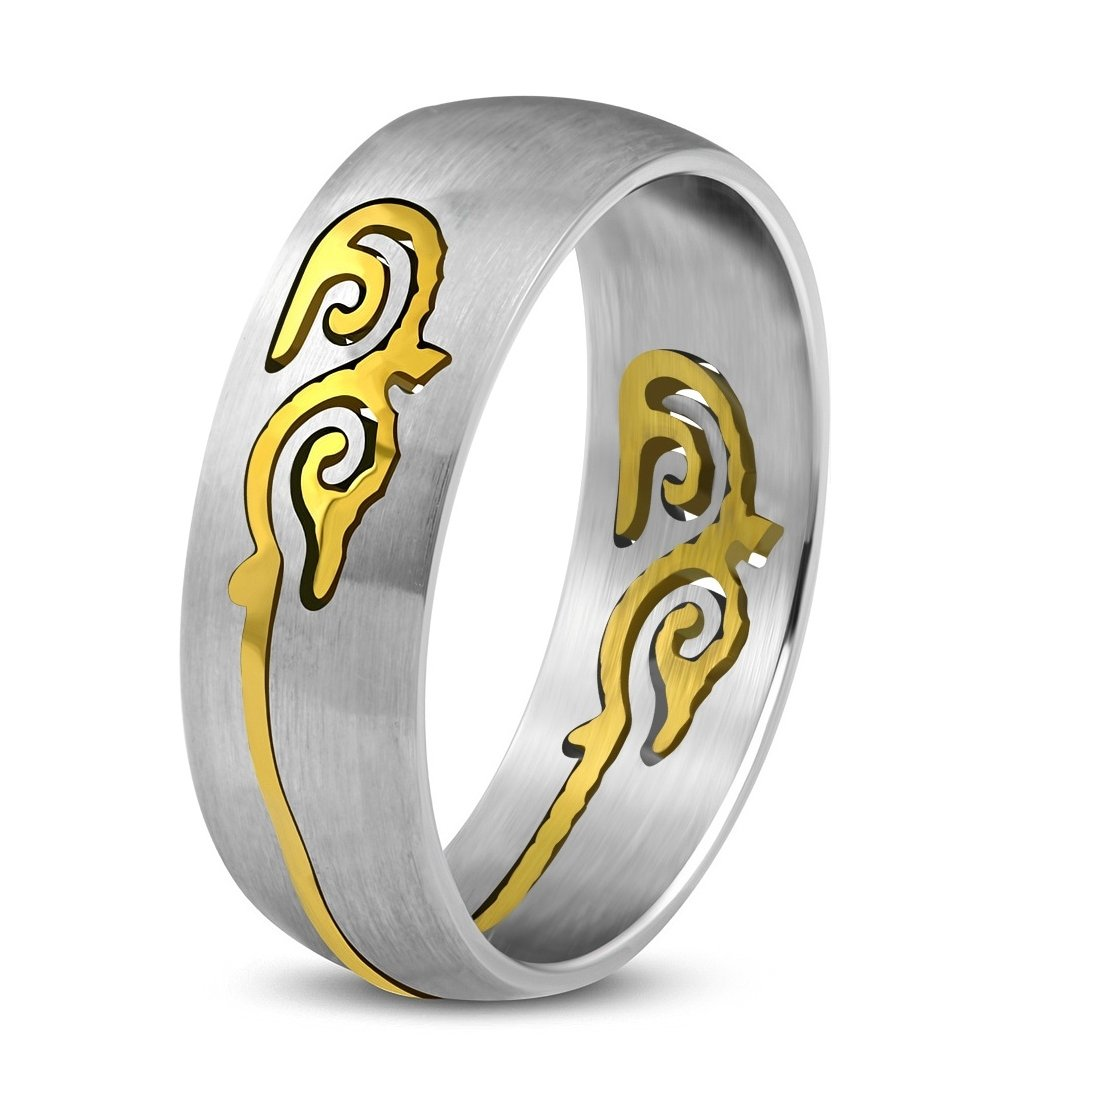 Stainless Steel Matte Finished 2 Color Spiral Vine Half-Round Band Ring